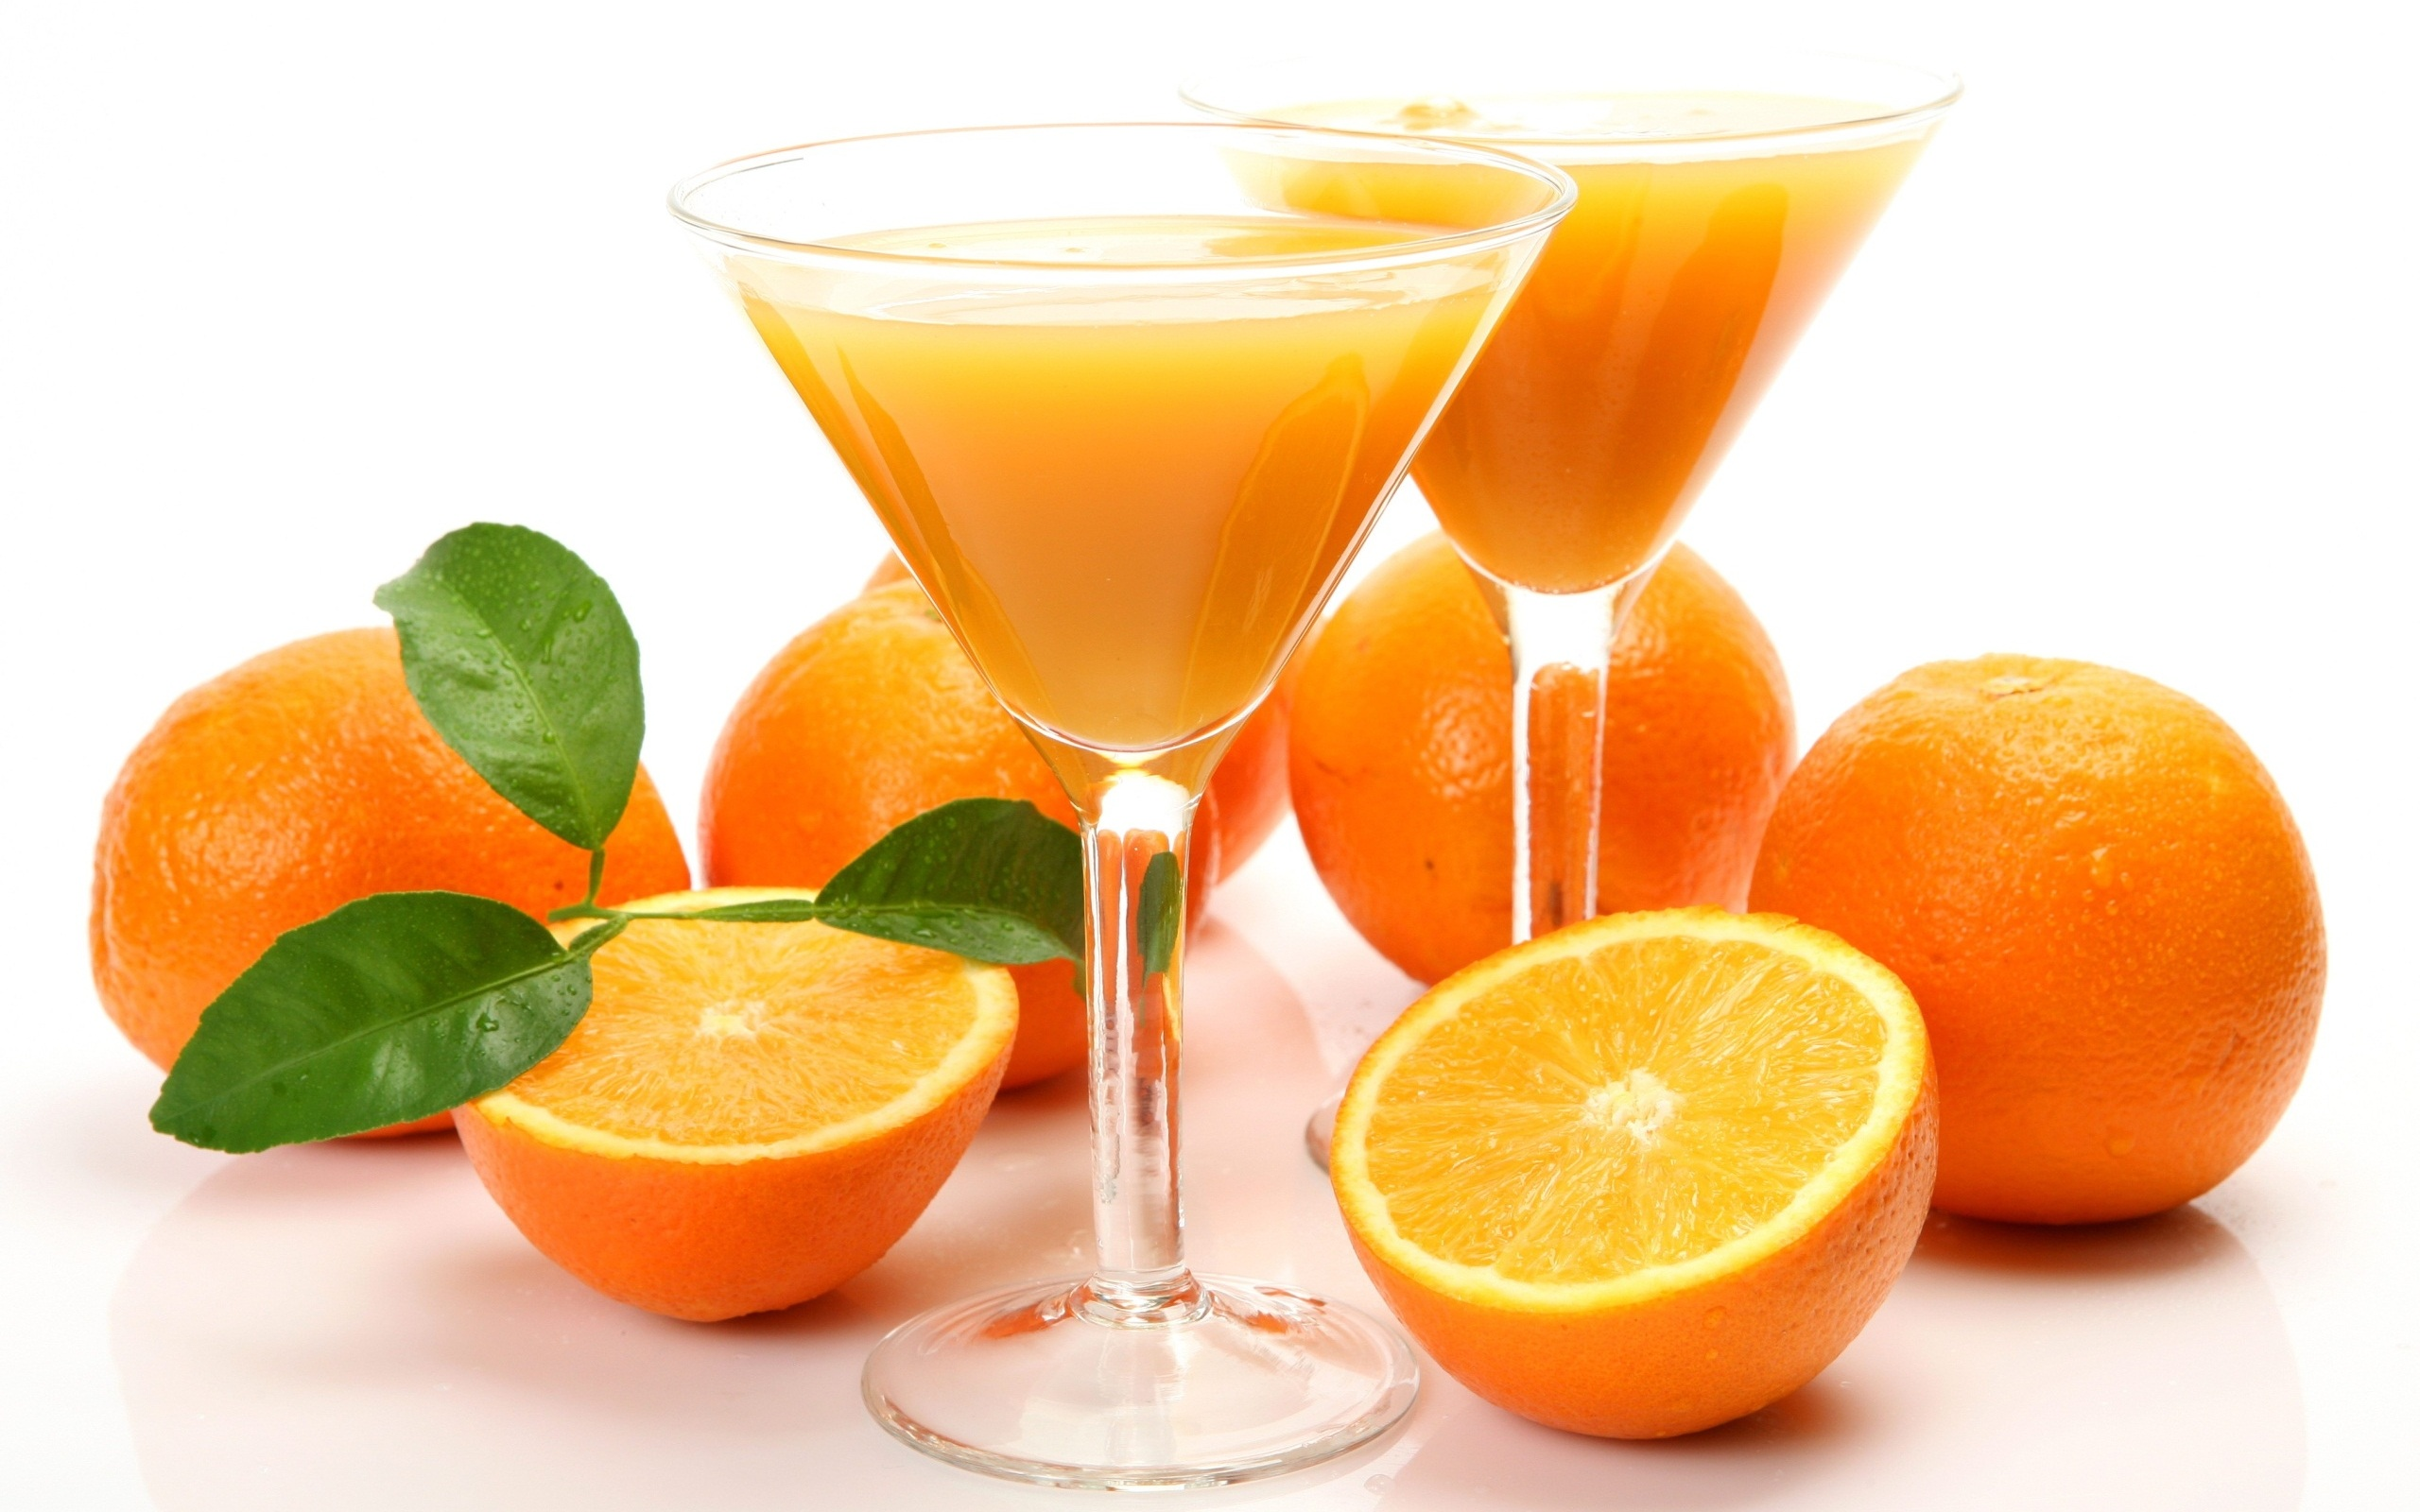 Orange Juice in Margarita Glasses 4460.89 Kb